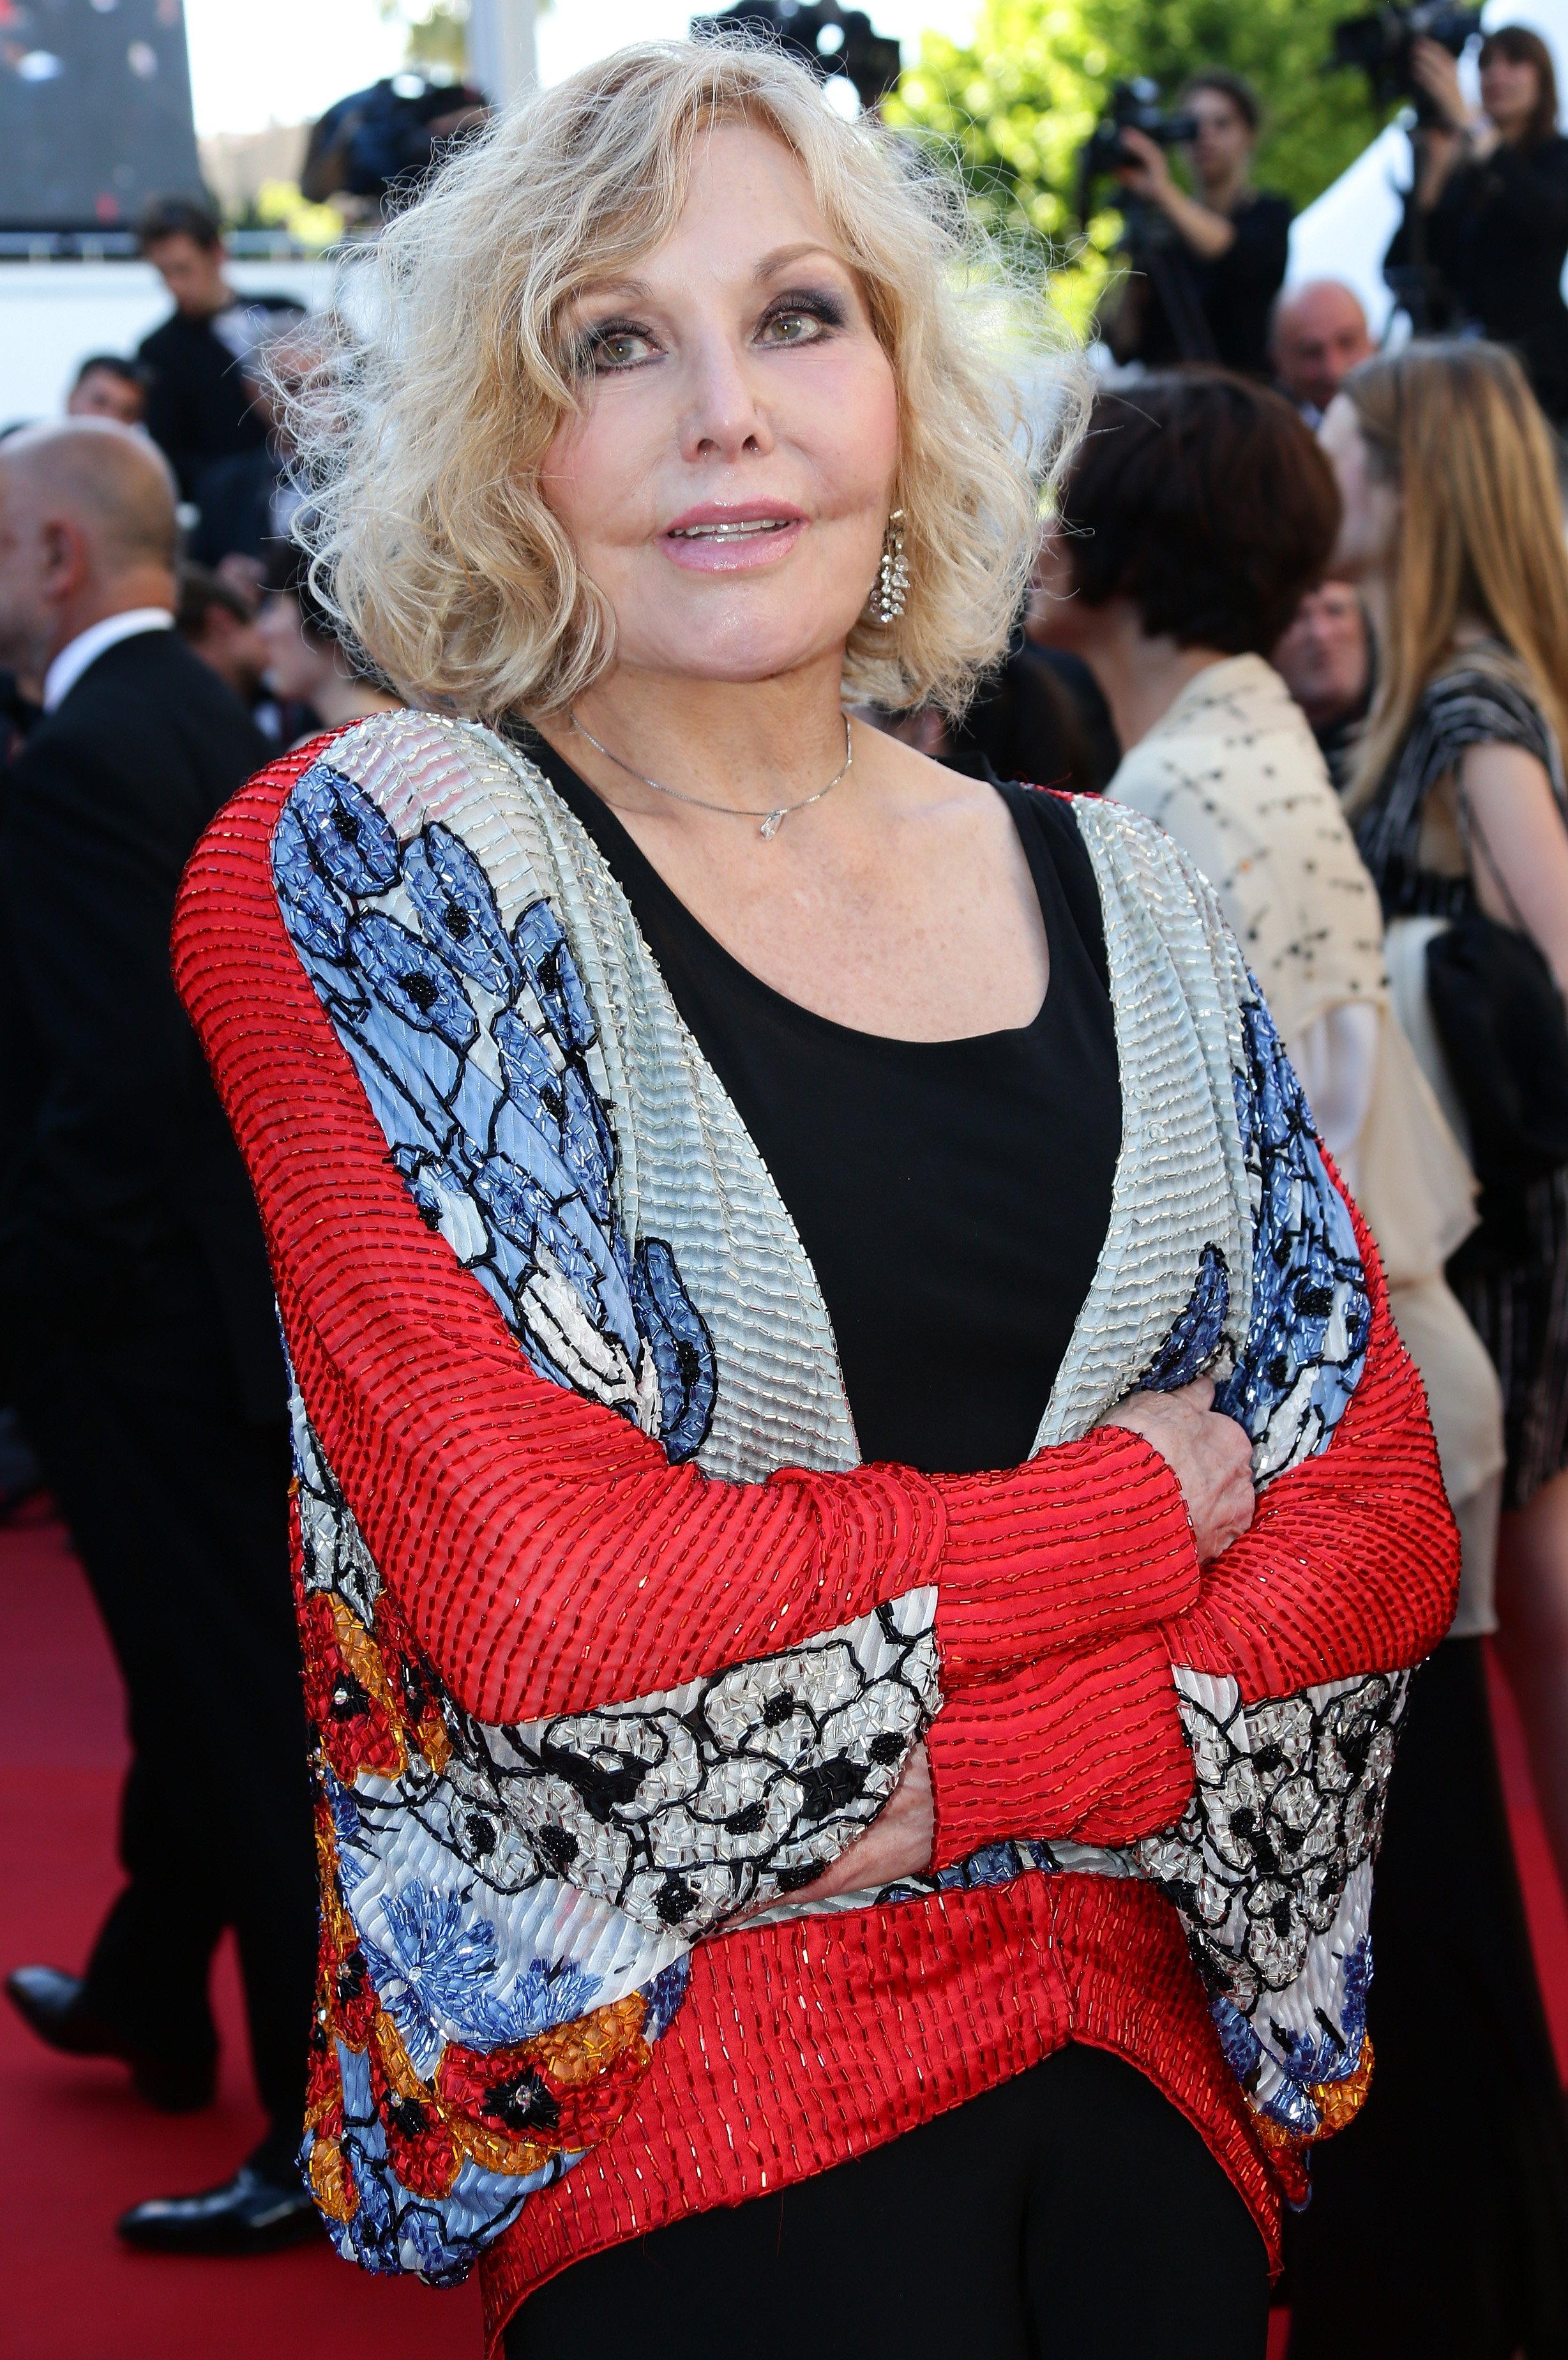 Actress Kim Novak attends the 'Zulu' Premiere and Closing Ceremony during the 66th Annual Cannes Film Festival at the Palais des Festivals on May 26, 2013 in Cannes, France.    Source: Getty Images